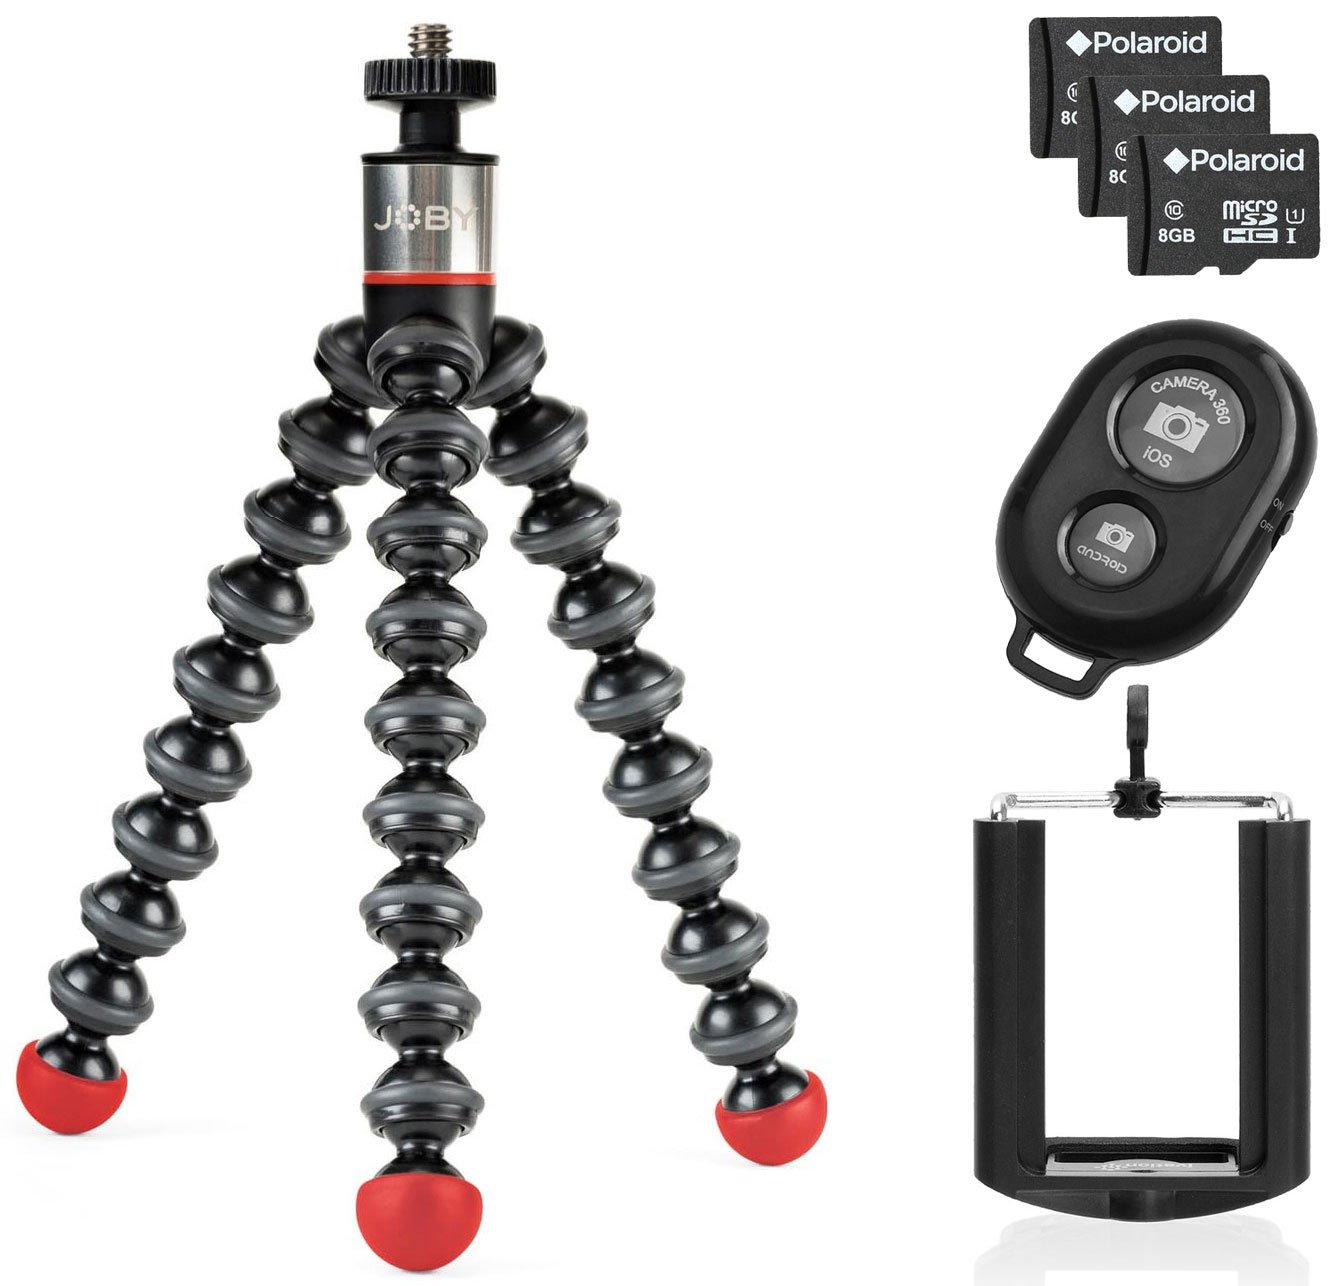 Joby GorillaPod Magnetic Tripod with Wireless Bluetooth Camera Shutter Remote Control for Apple and Android Phones and Universal Tripod Mount for Smartphones w/ 3 8GB Micro SDHC Class 10 Memory Cards